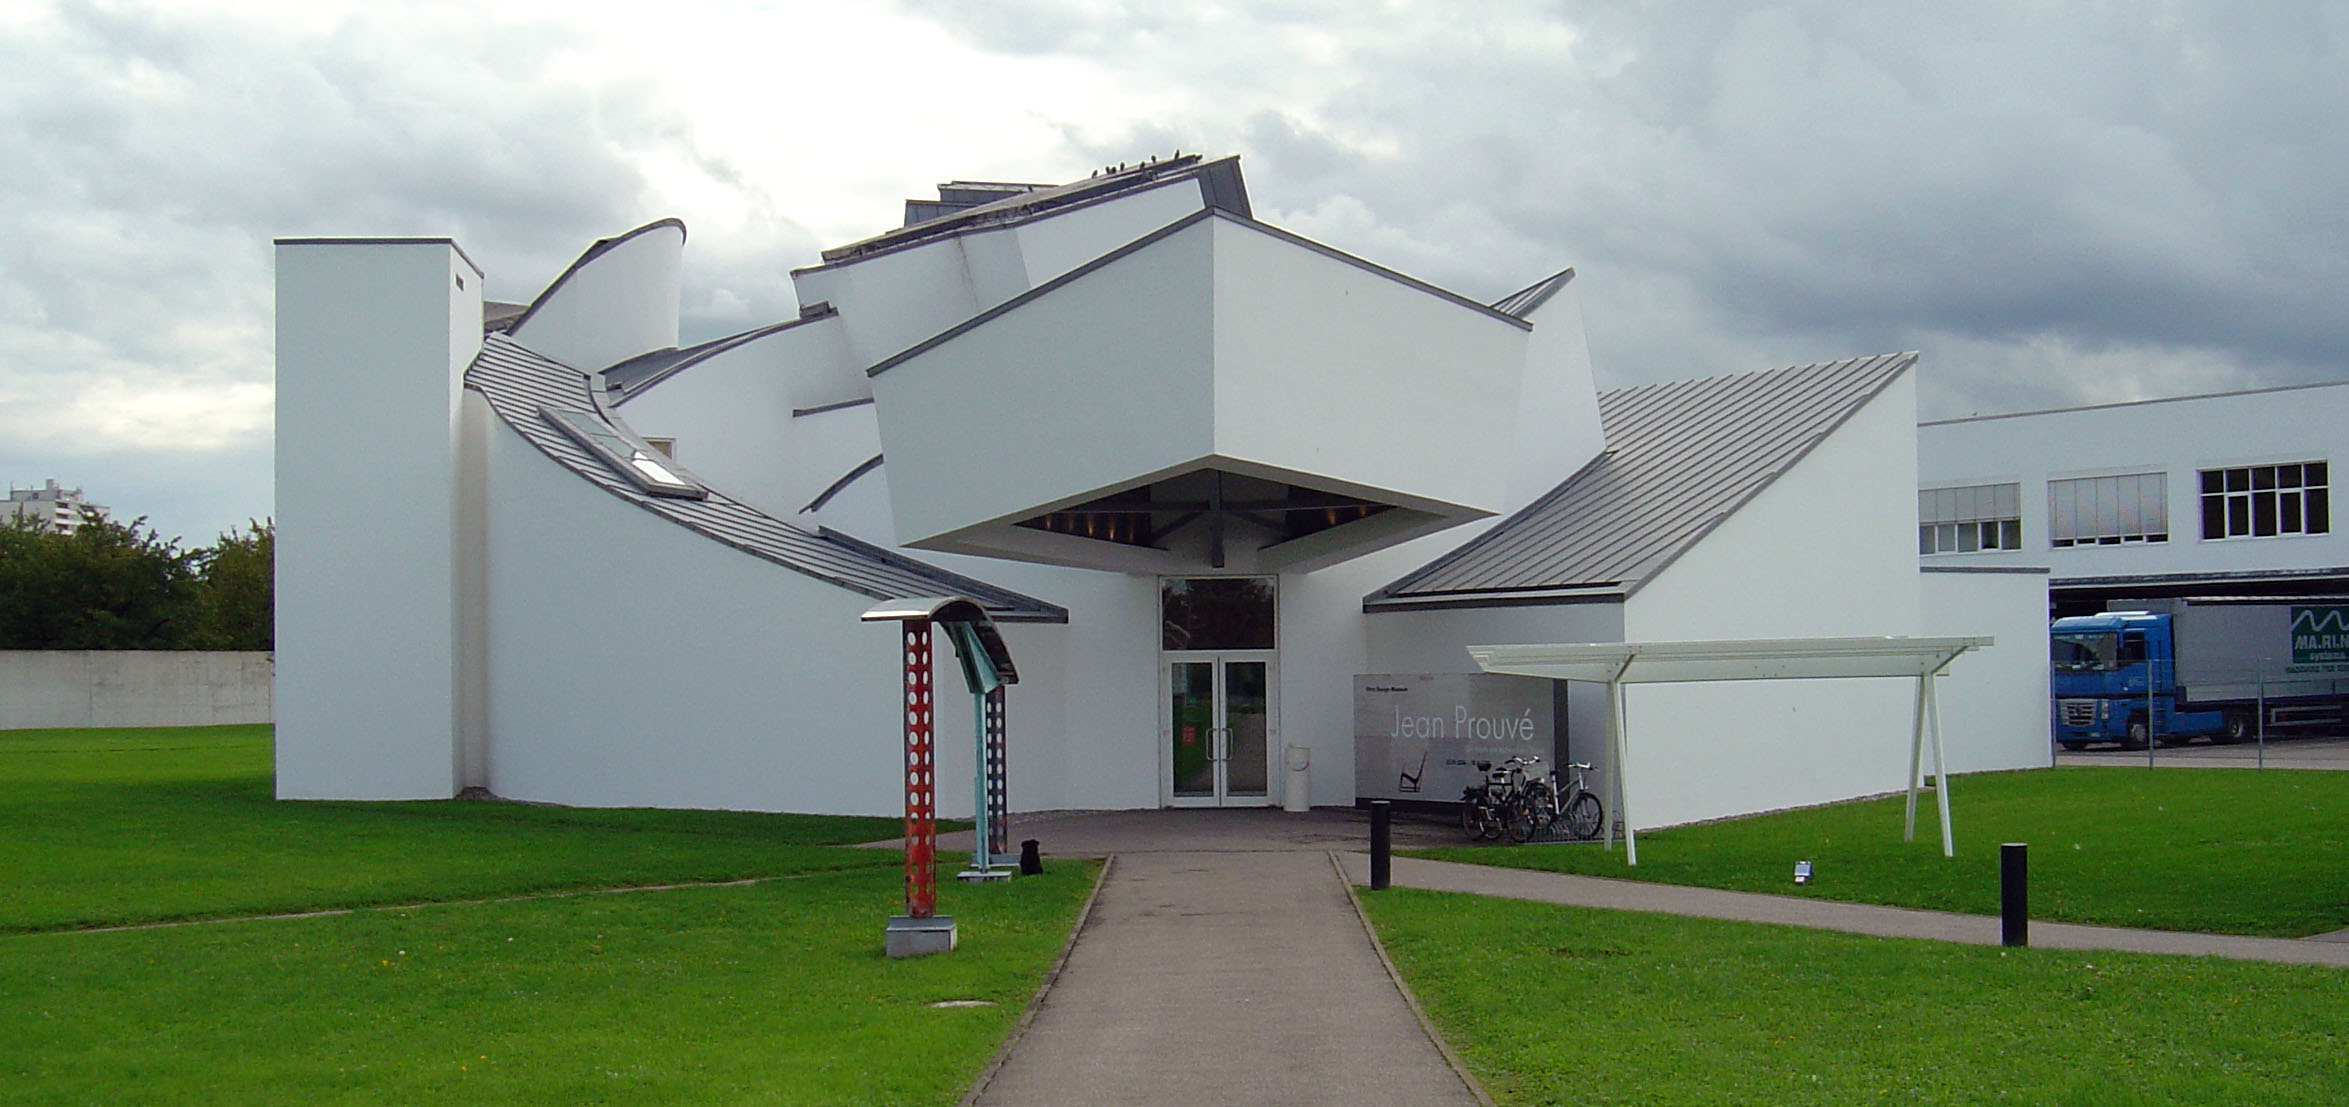 File:Vitra Design Museum, front view.jpg - Wikipedia